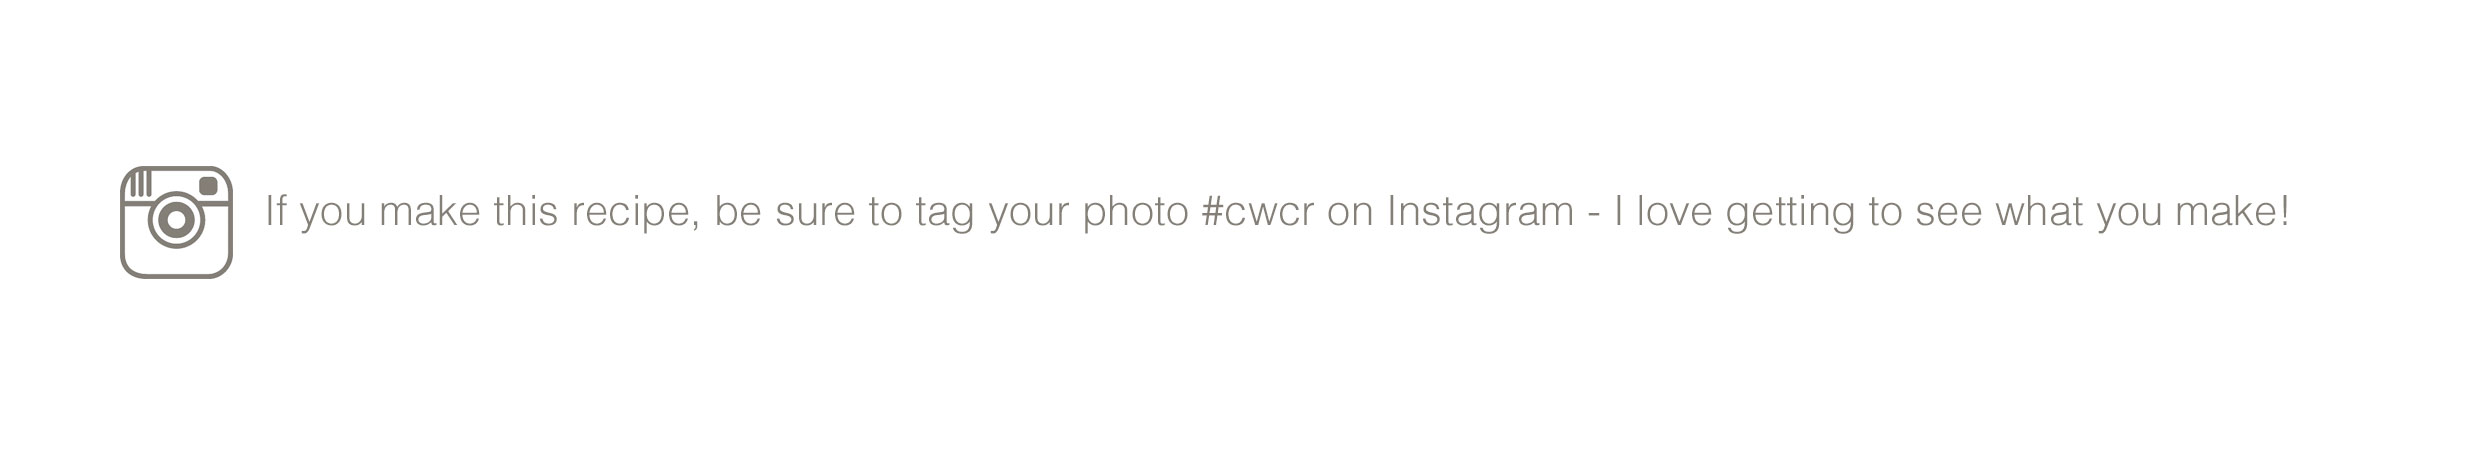 #cwcr